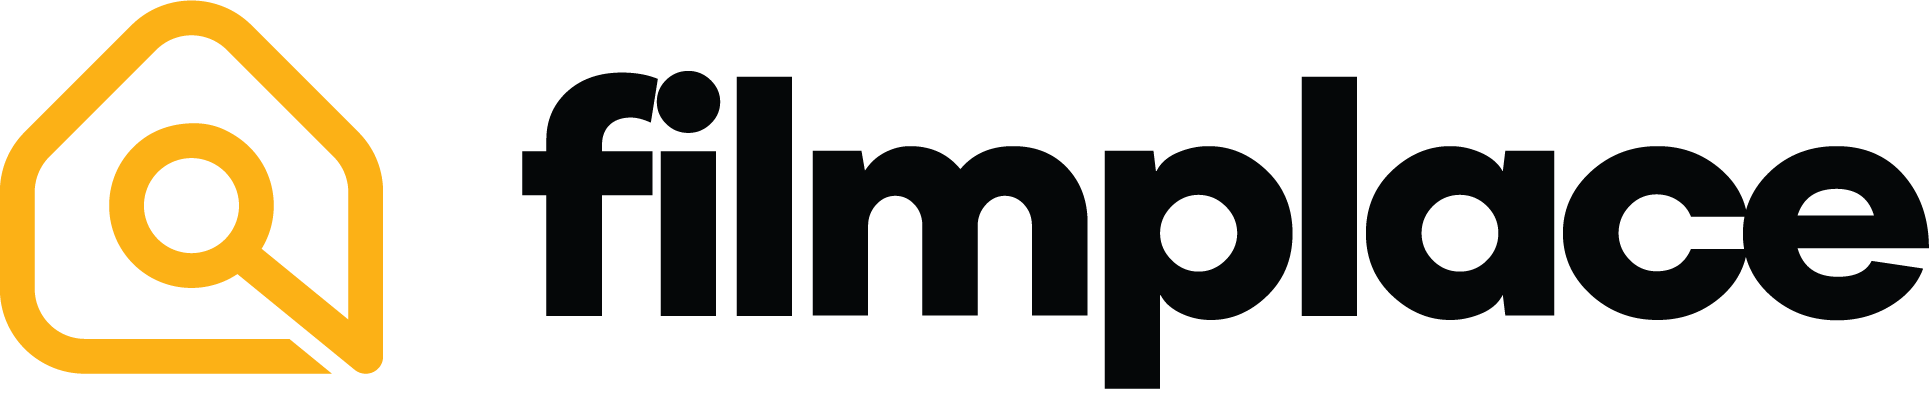 filmplace logo_small